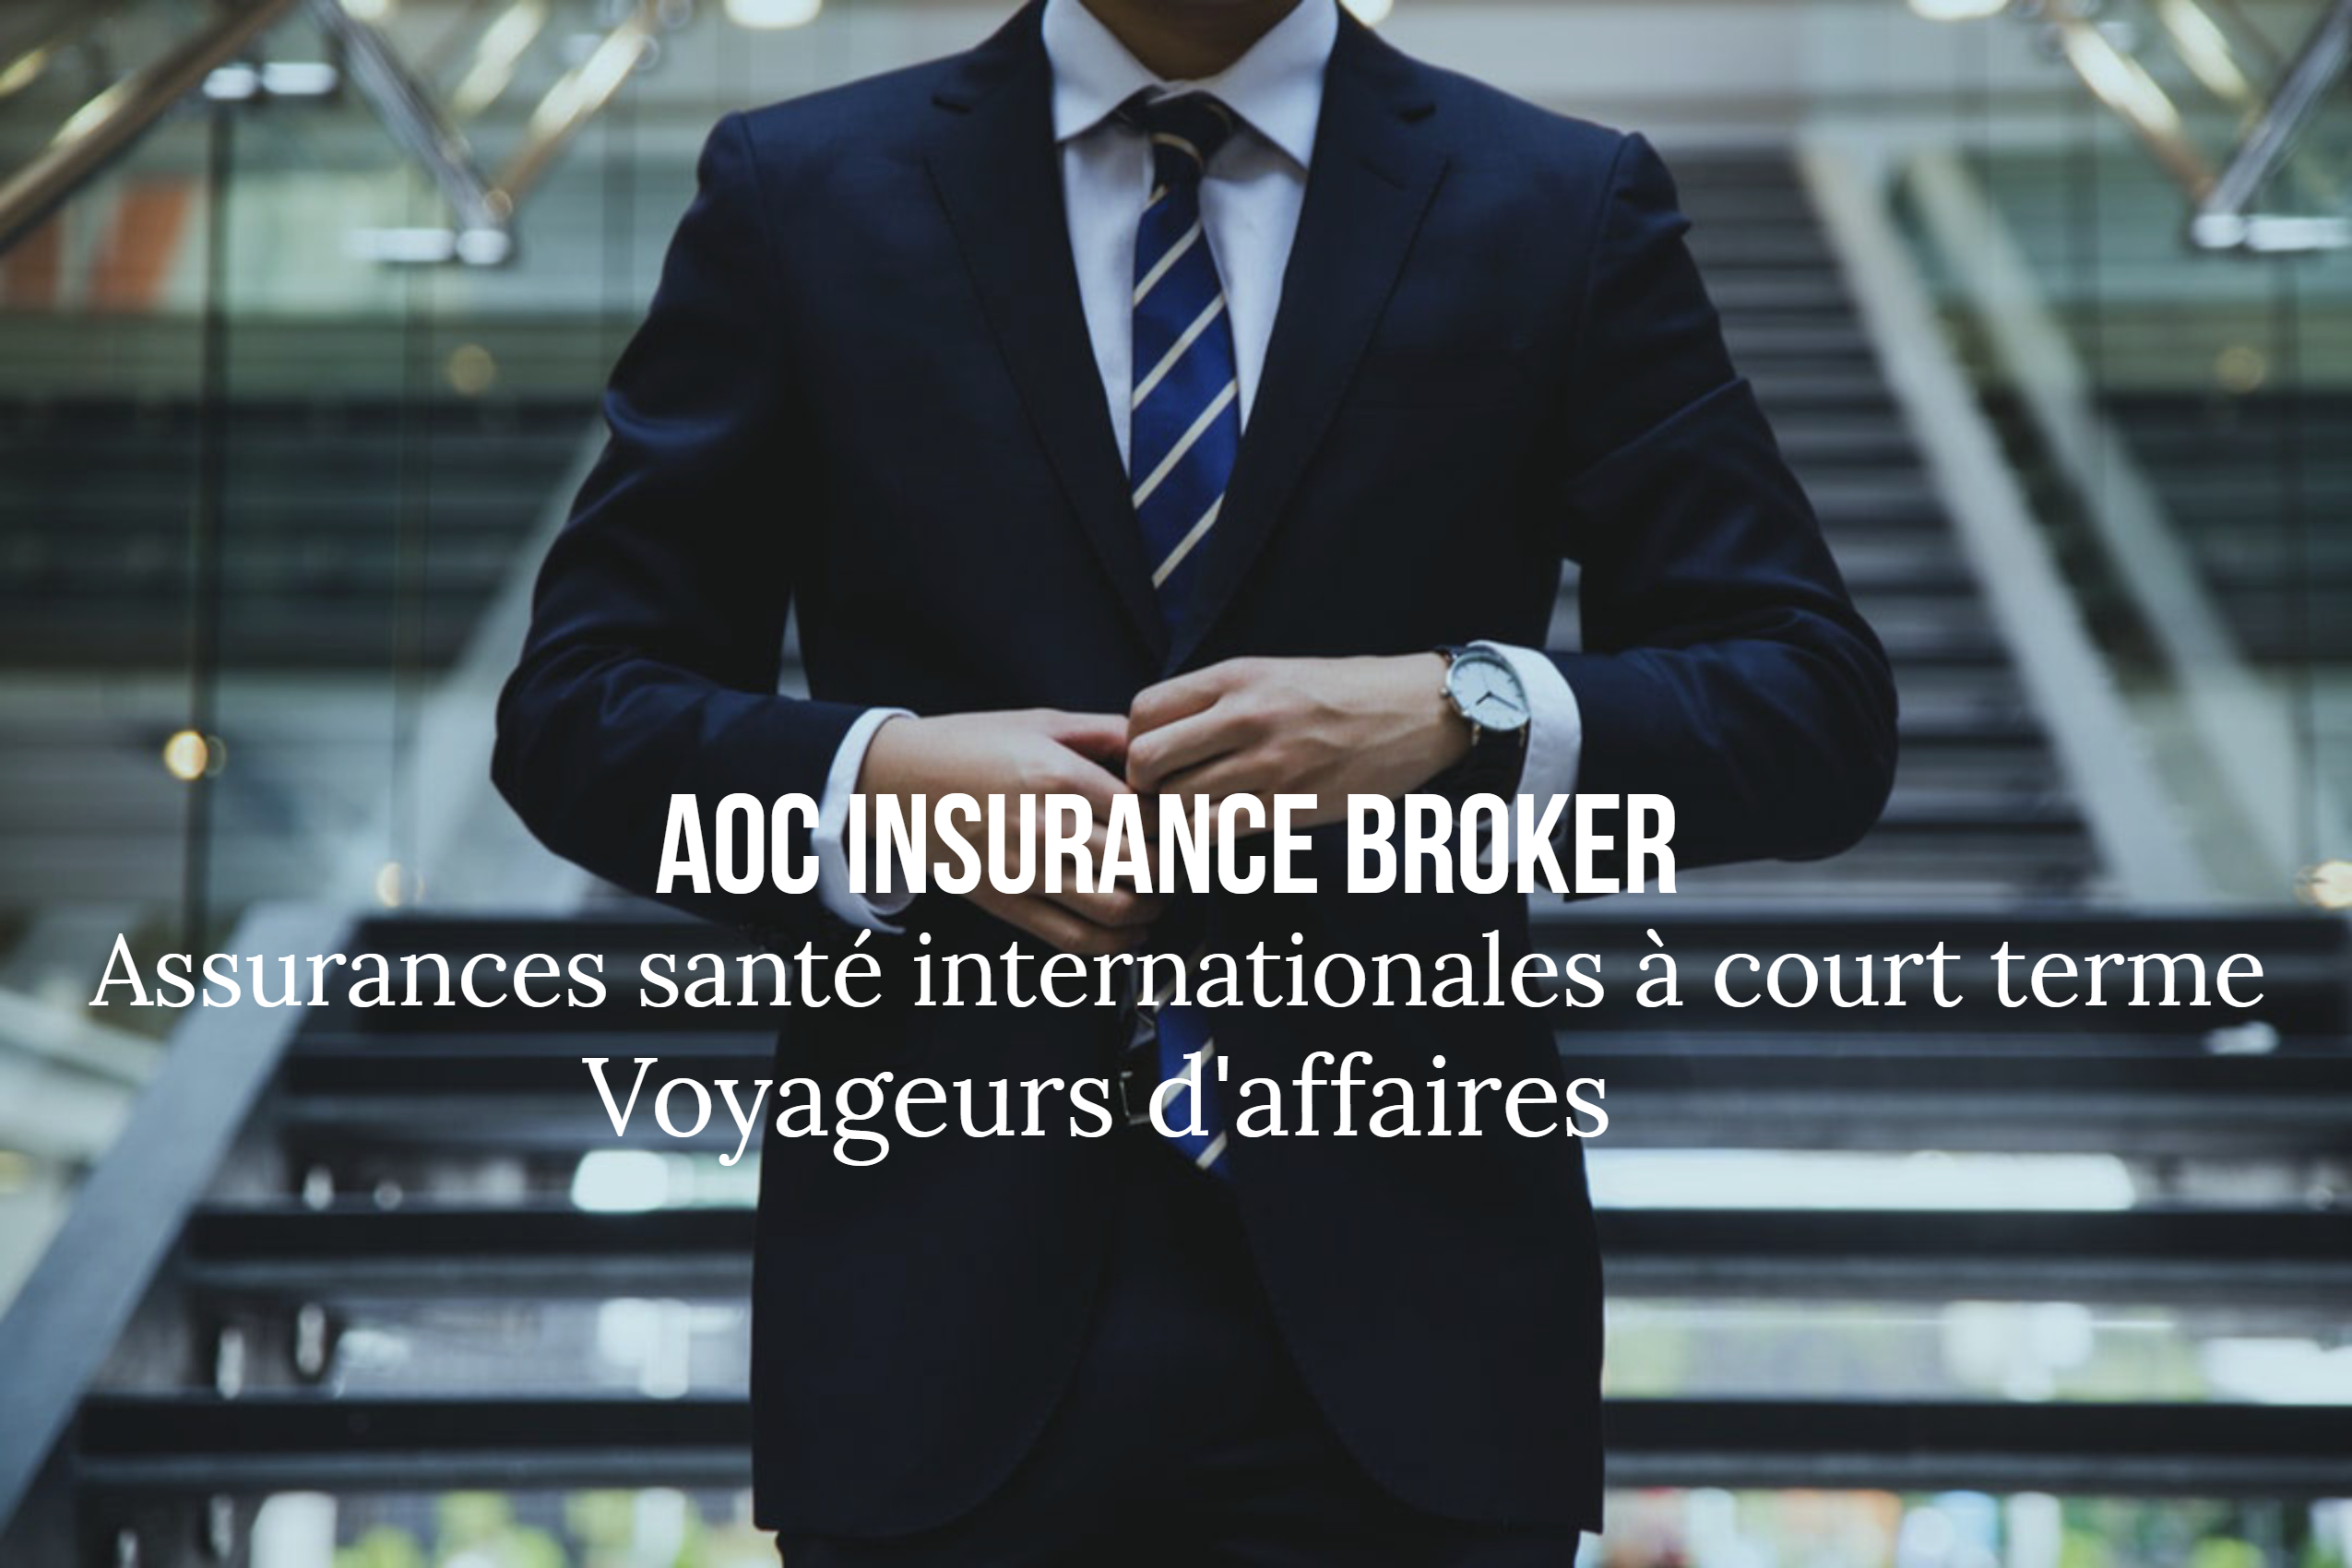 Aoc_assurance_santé_internationales_à_court_terme.jpg